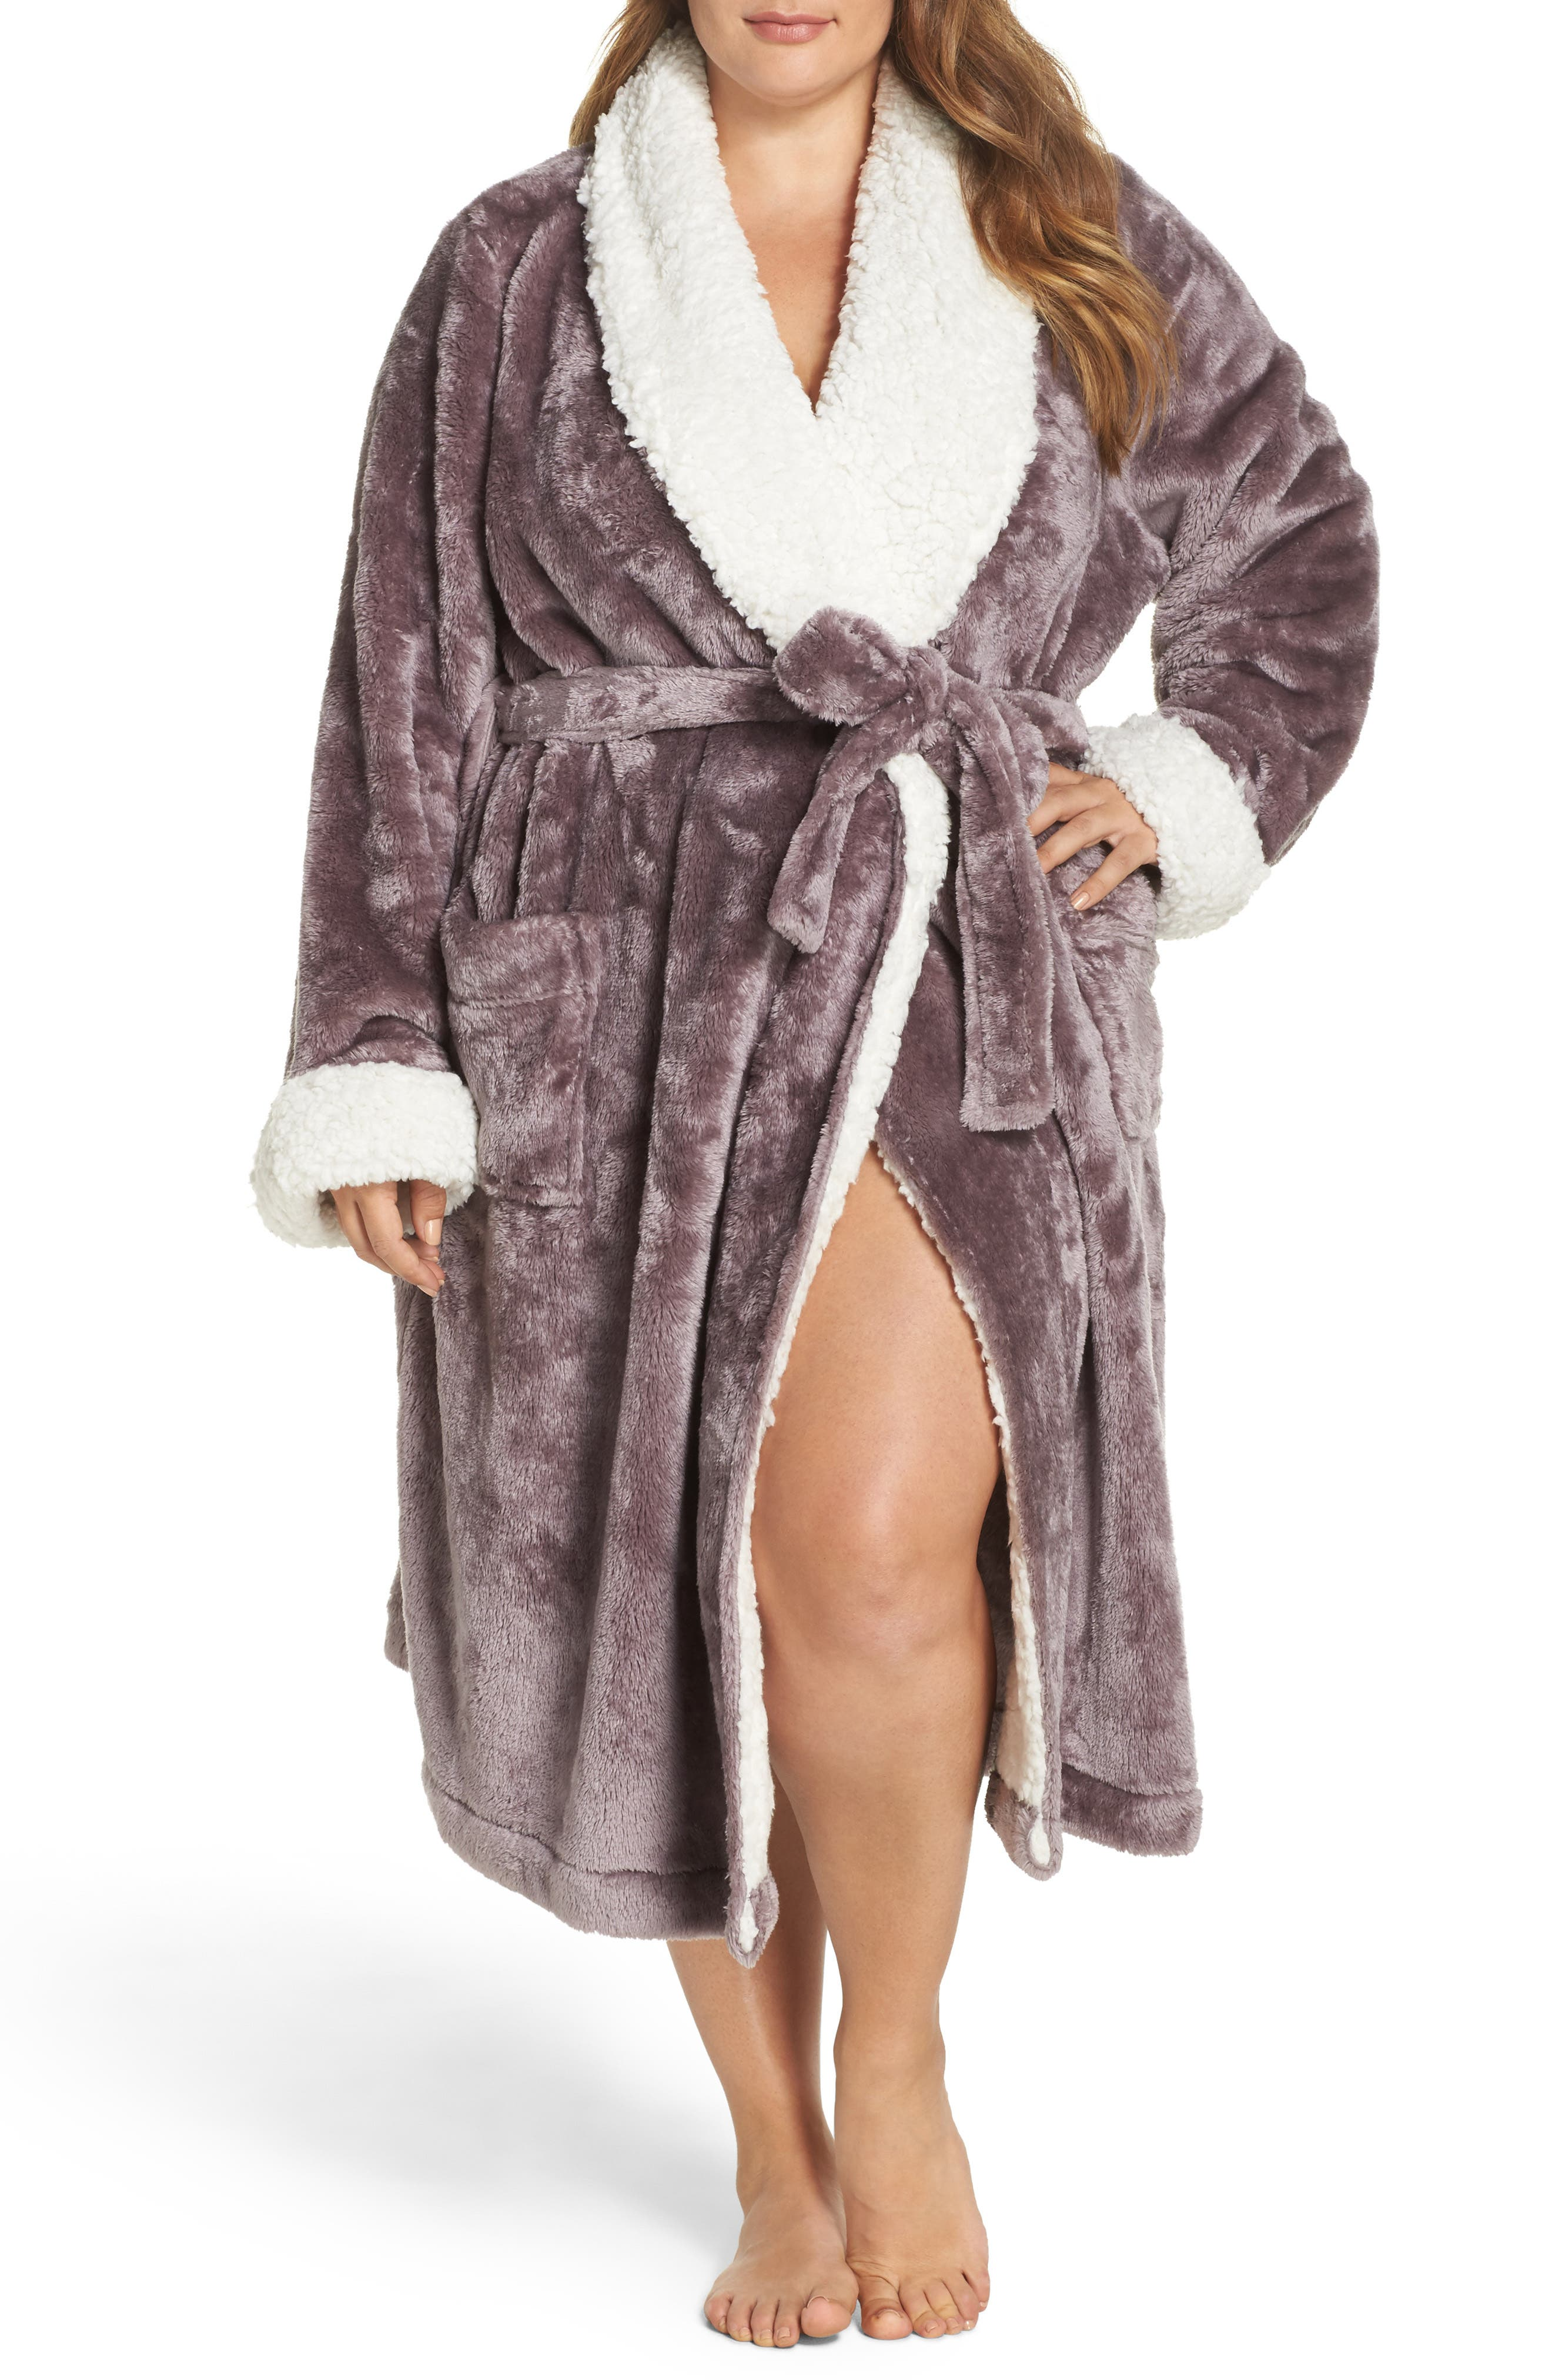 Alternate Image 1 Selected - Nordstrom Lingerie Frosted Plush Robe (Plus Size)